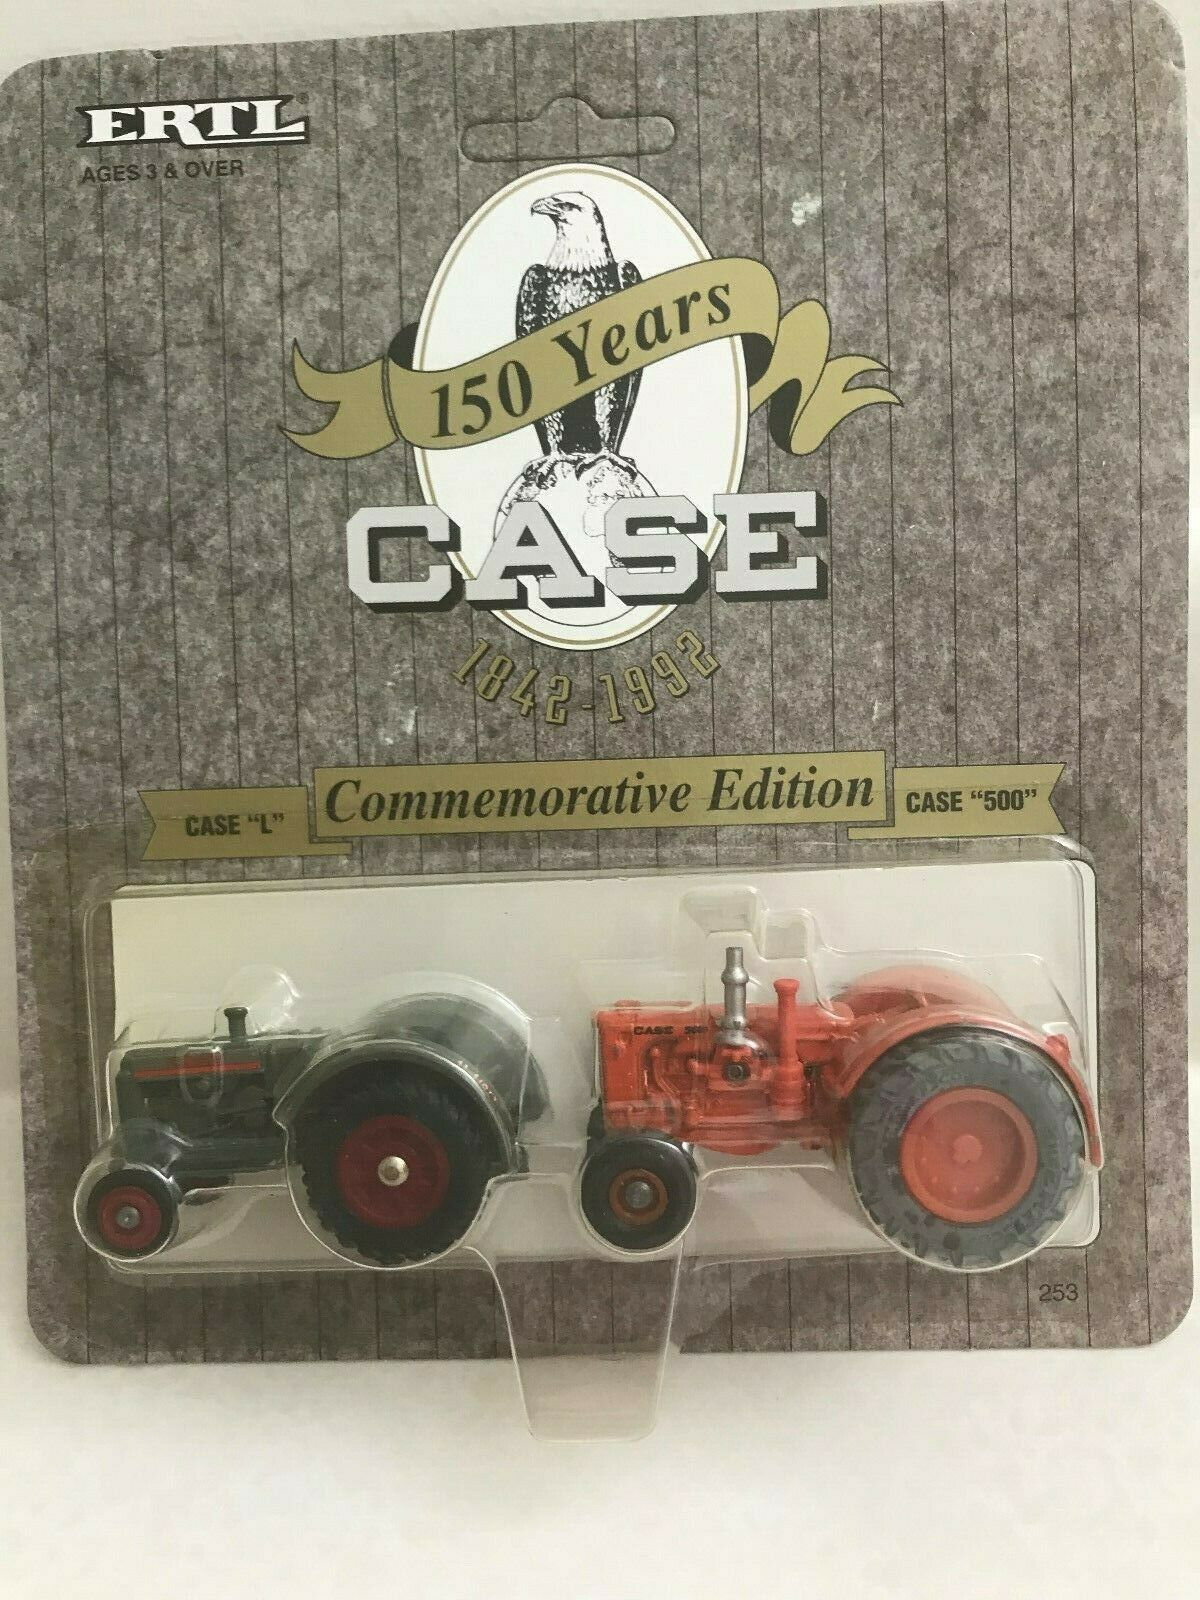 Case L and Case 500 -150 Years Commemorative Edition 1/64 scale